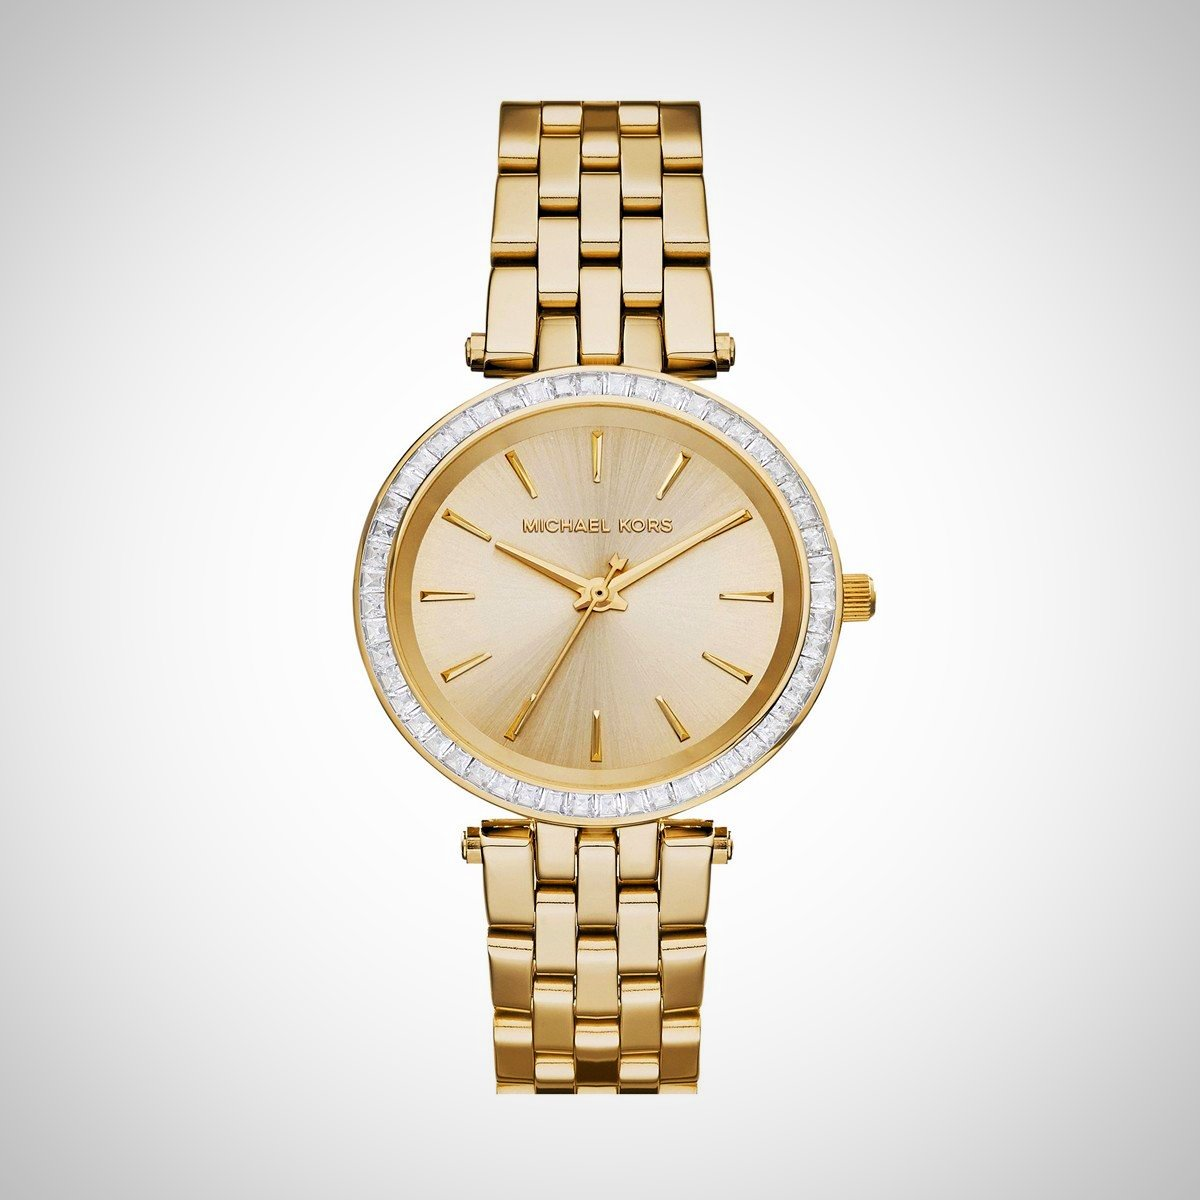 Michael Kors MK3365 Ladies Darci Gold Tone Watch